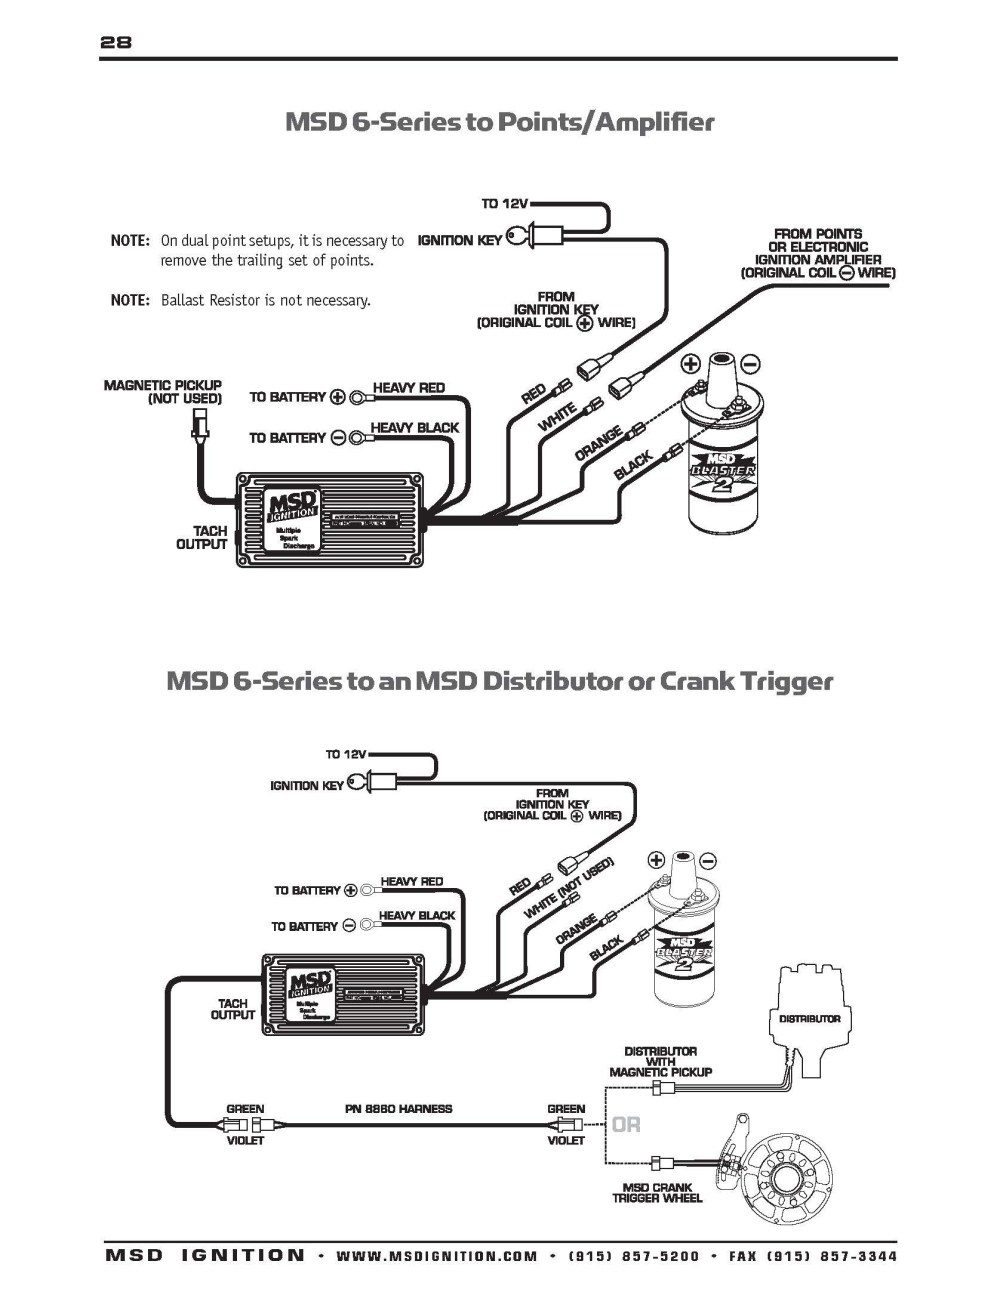 Accel 8140 Coil Wiring Diagram. . Wiring Diagram on